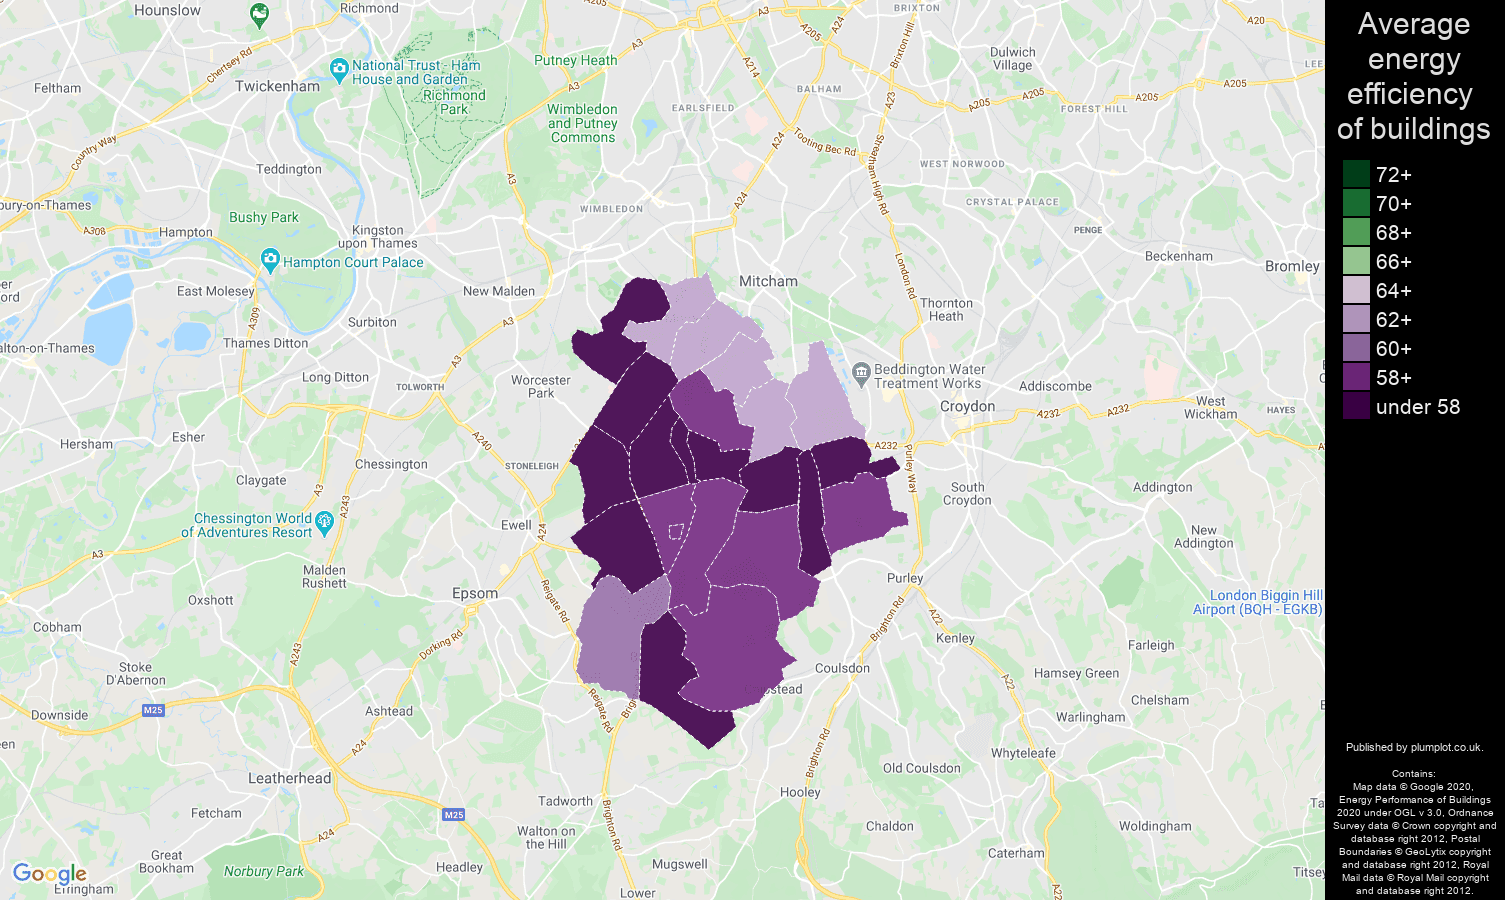 Sutton map of energy efficiency of houses